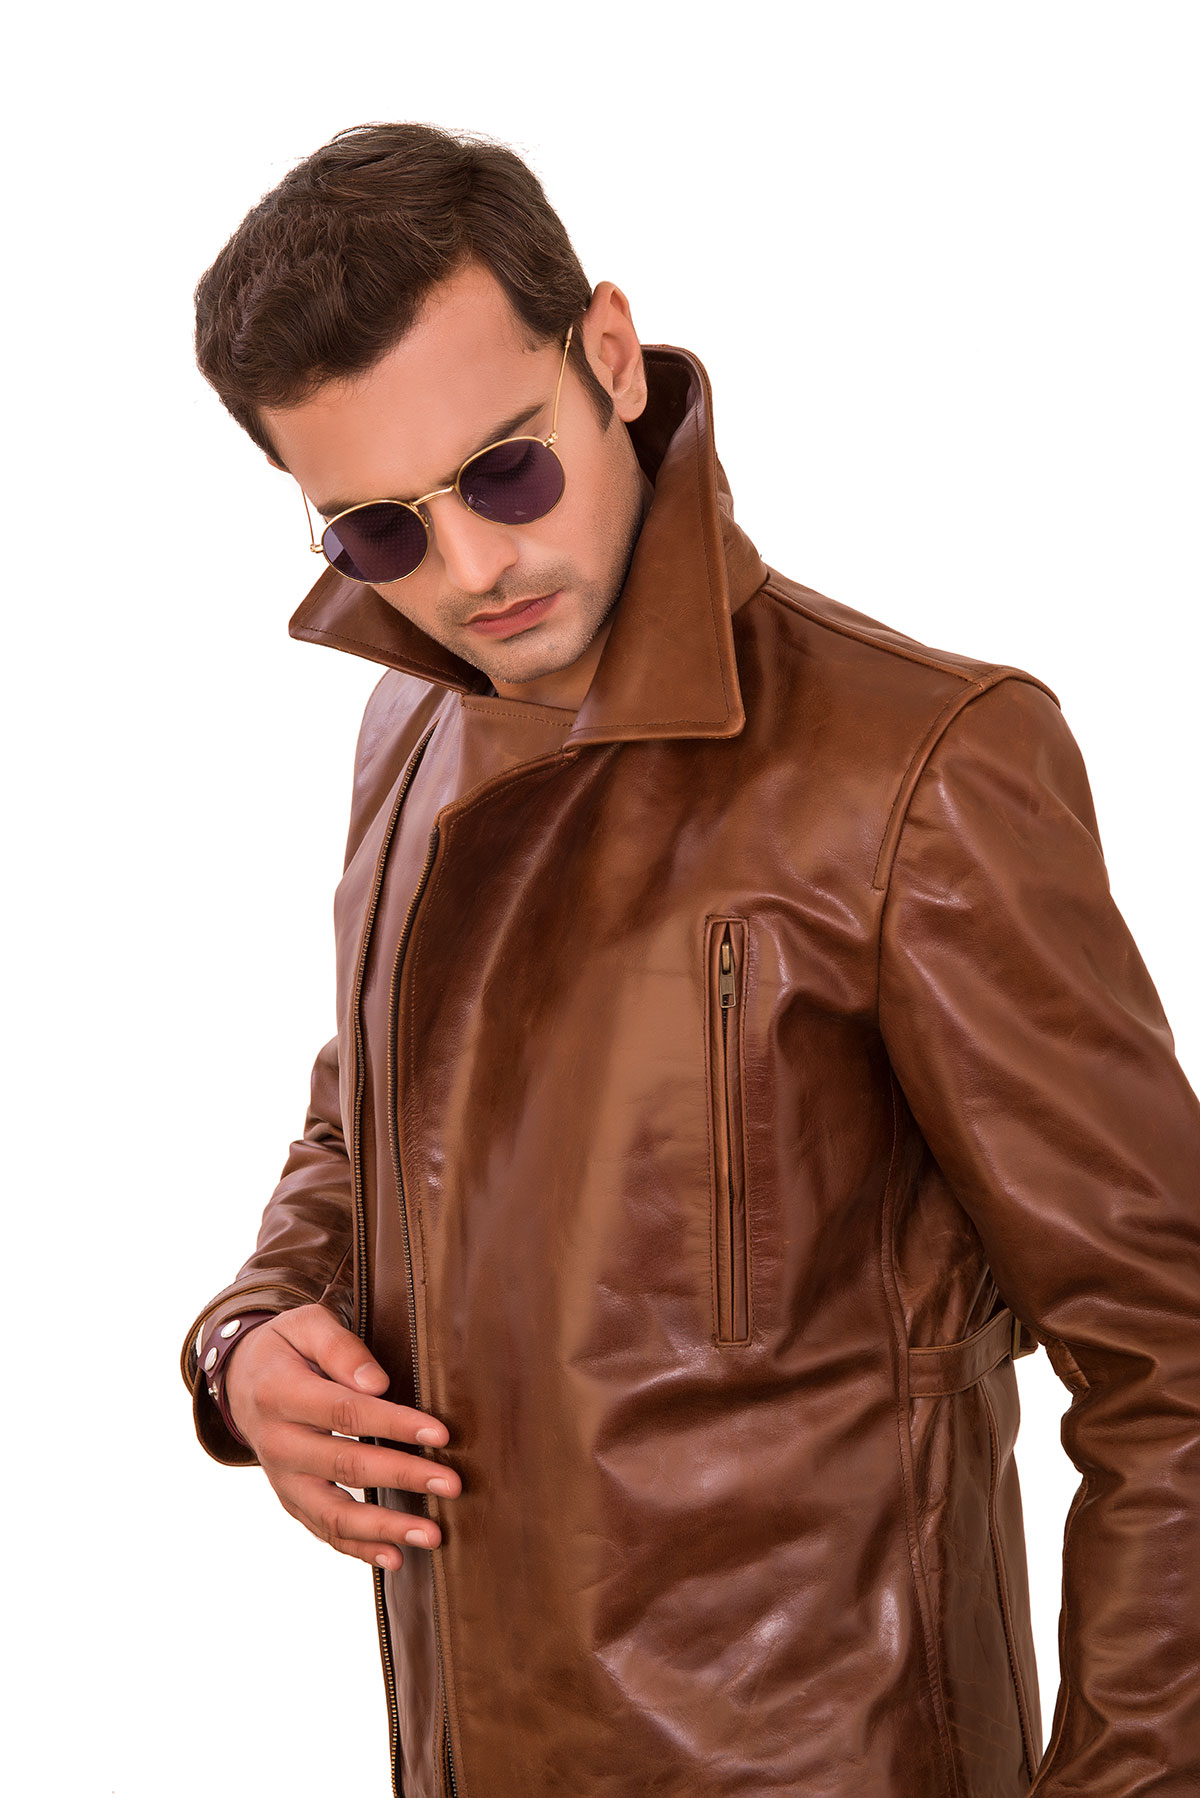 mens lambskin leather jacket outfit